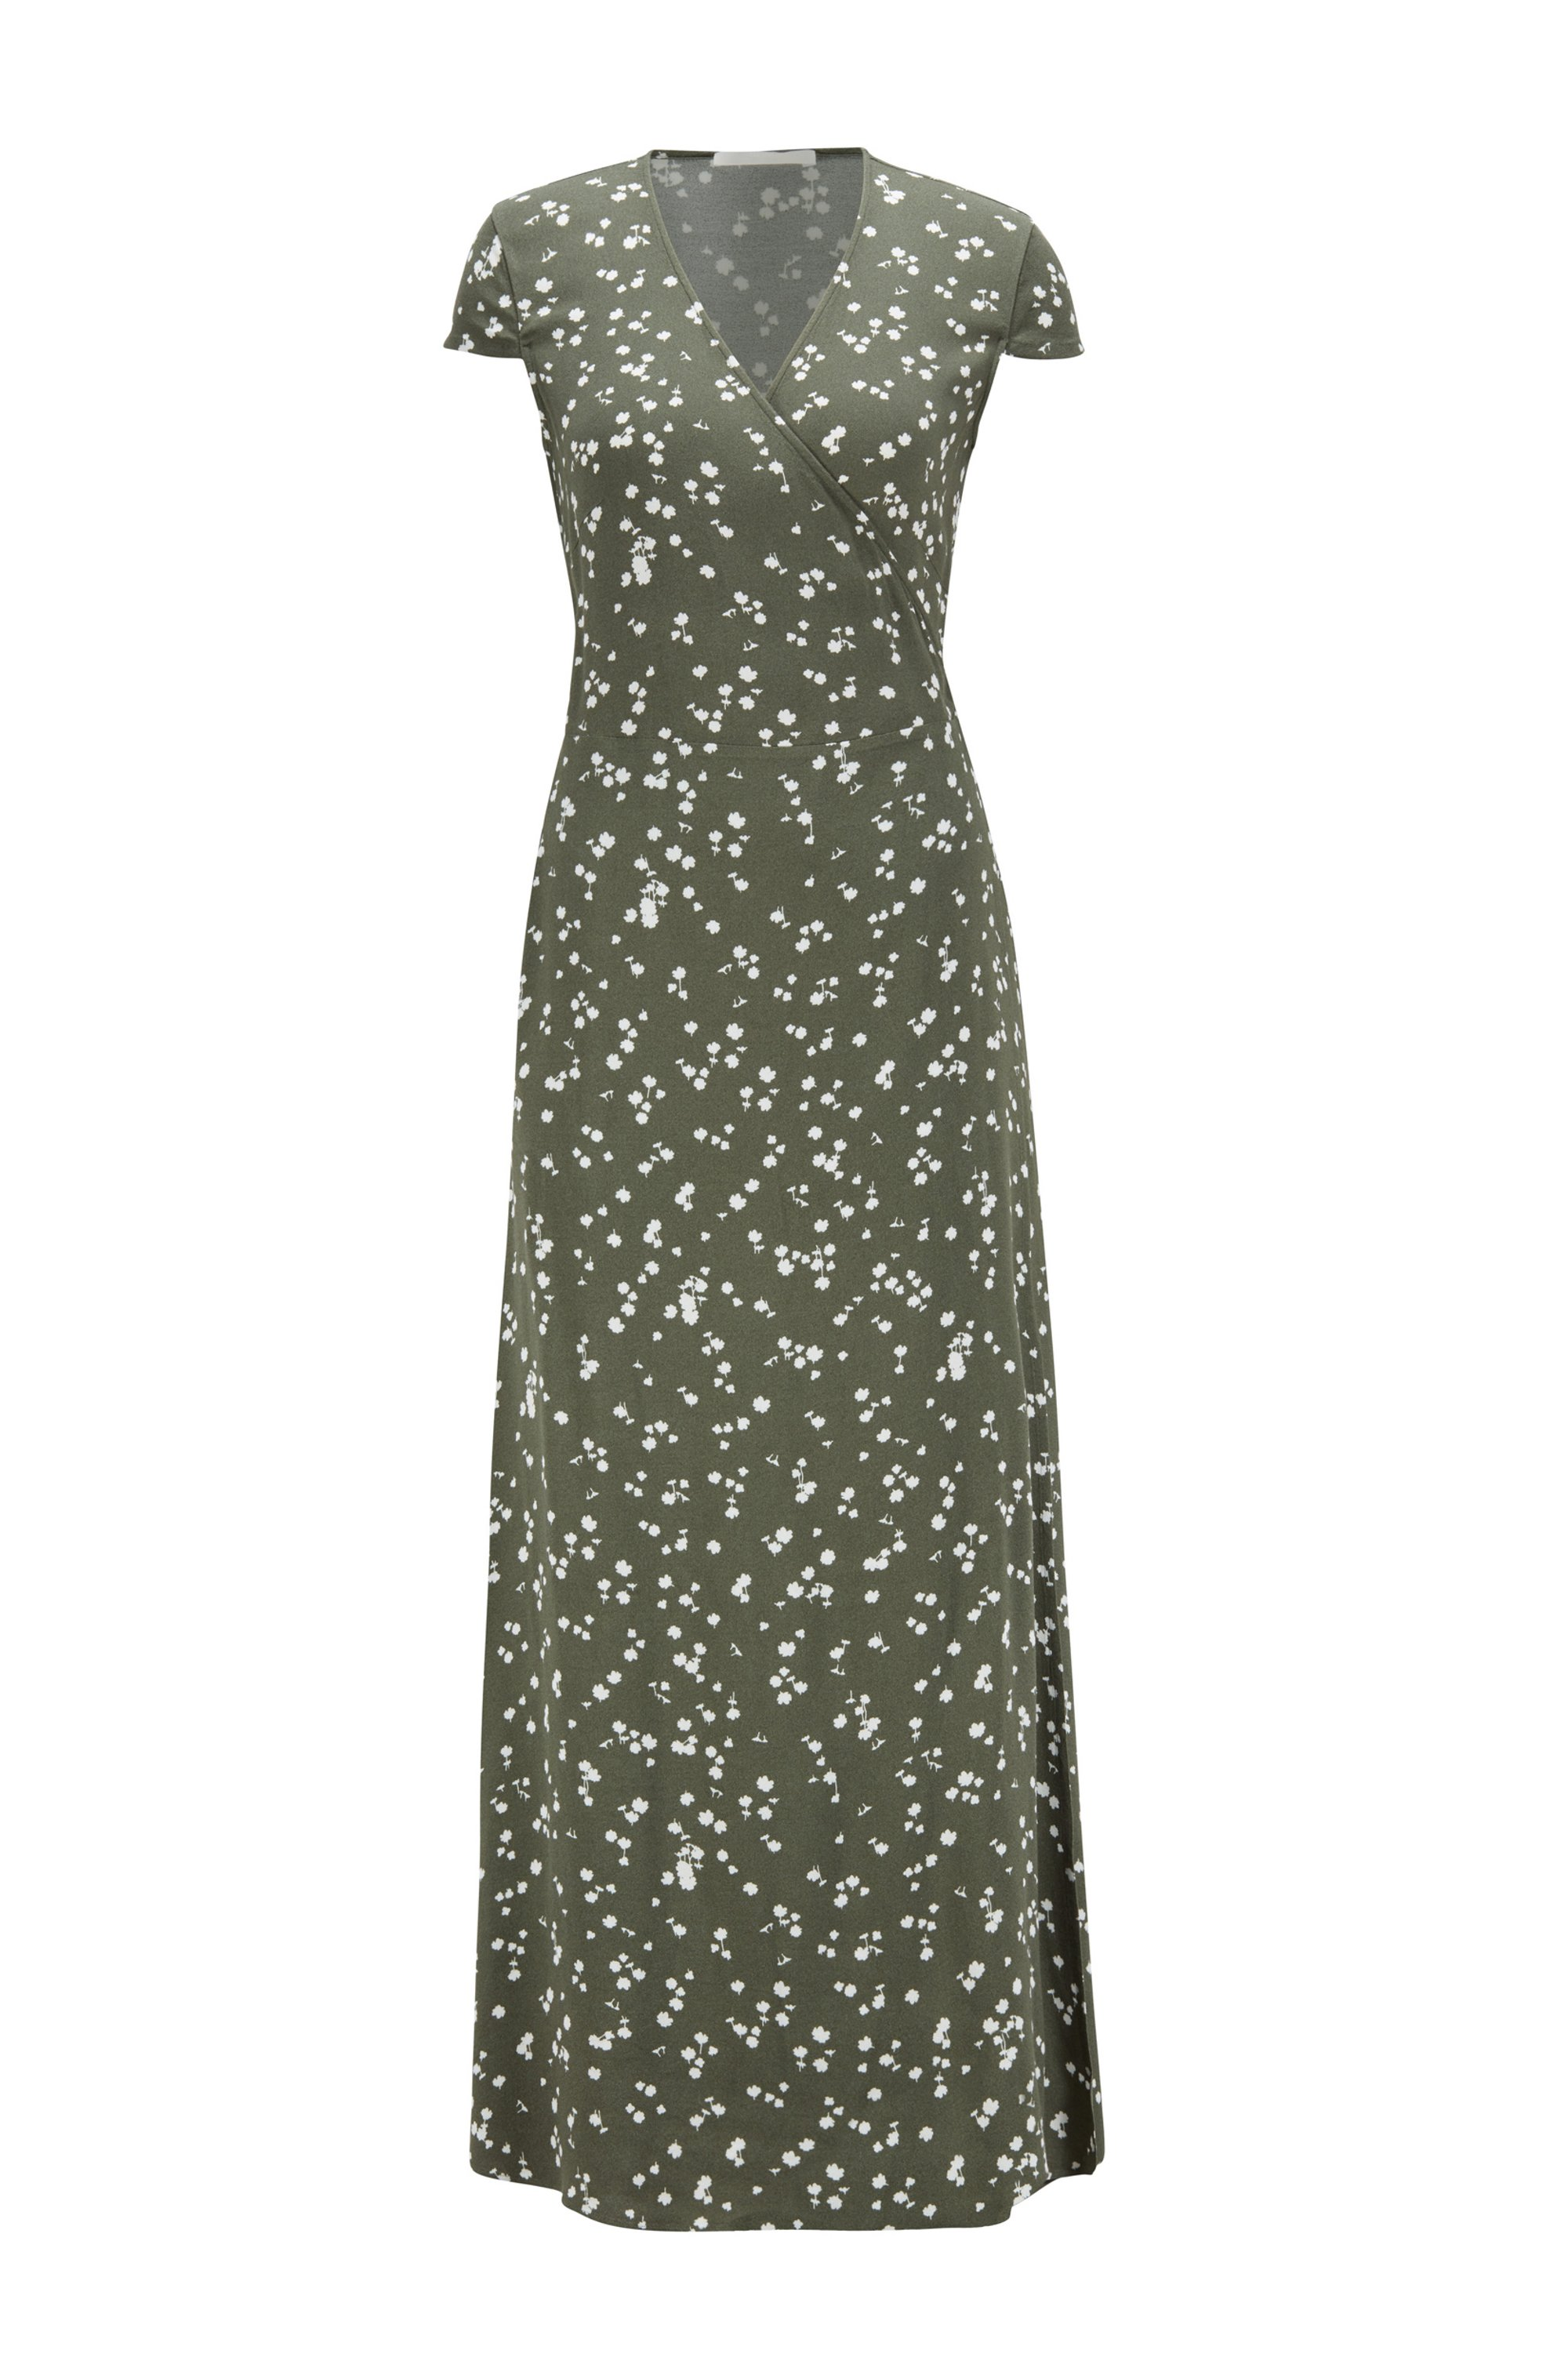 Printed maxi dress with wrap front, Patterned